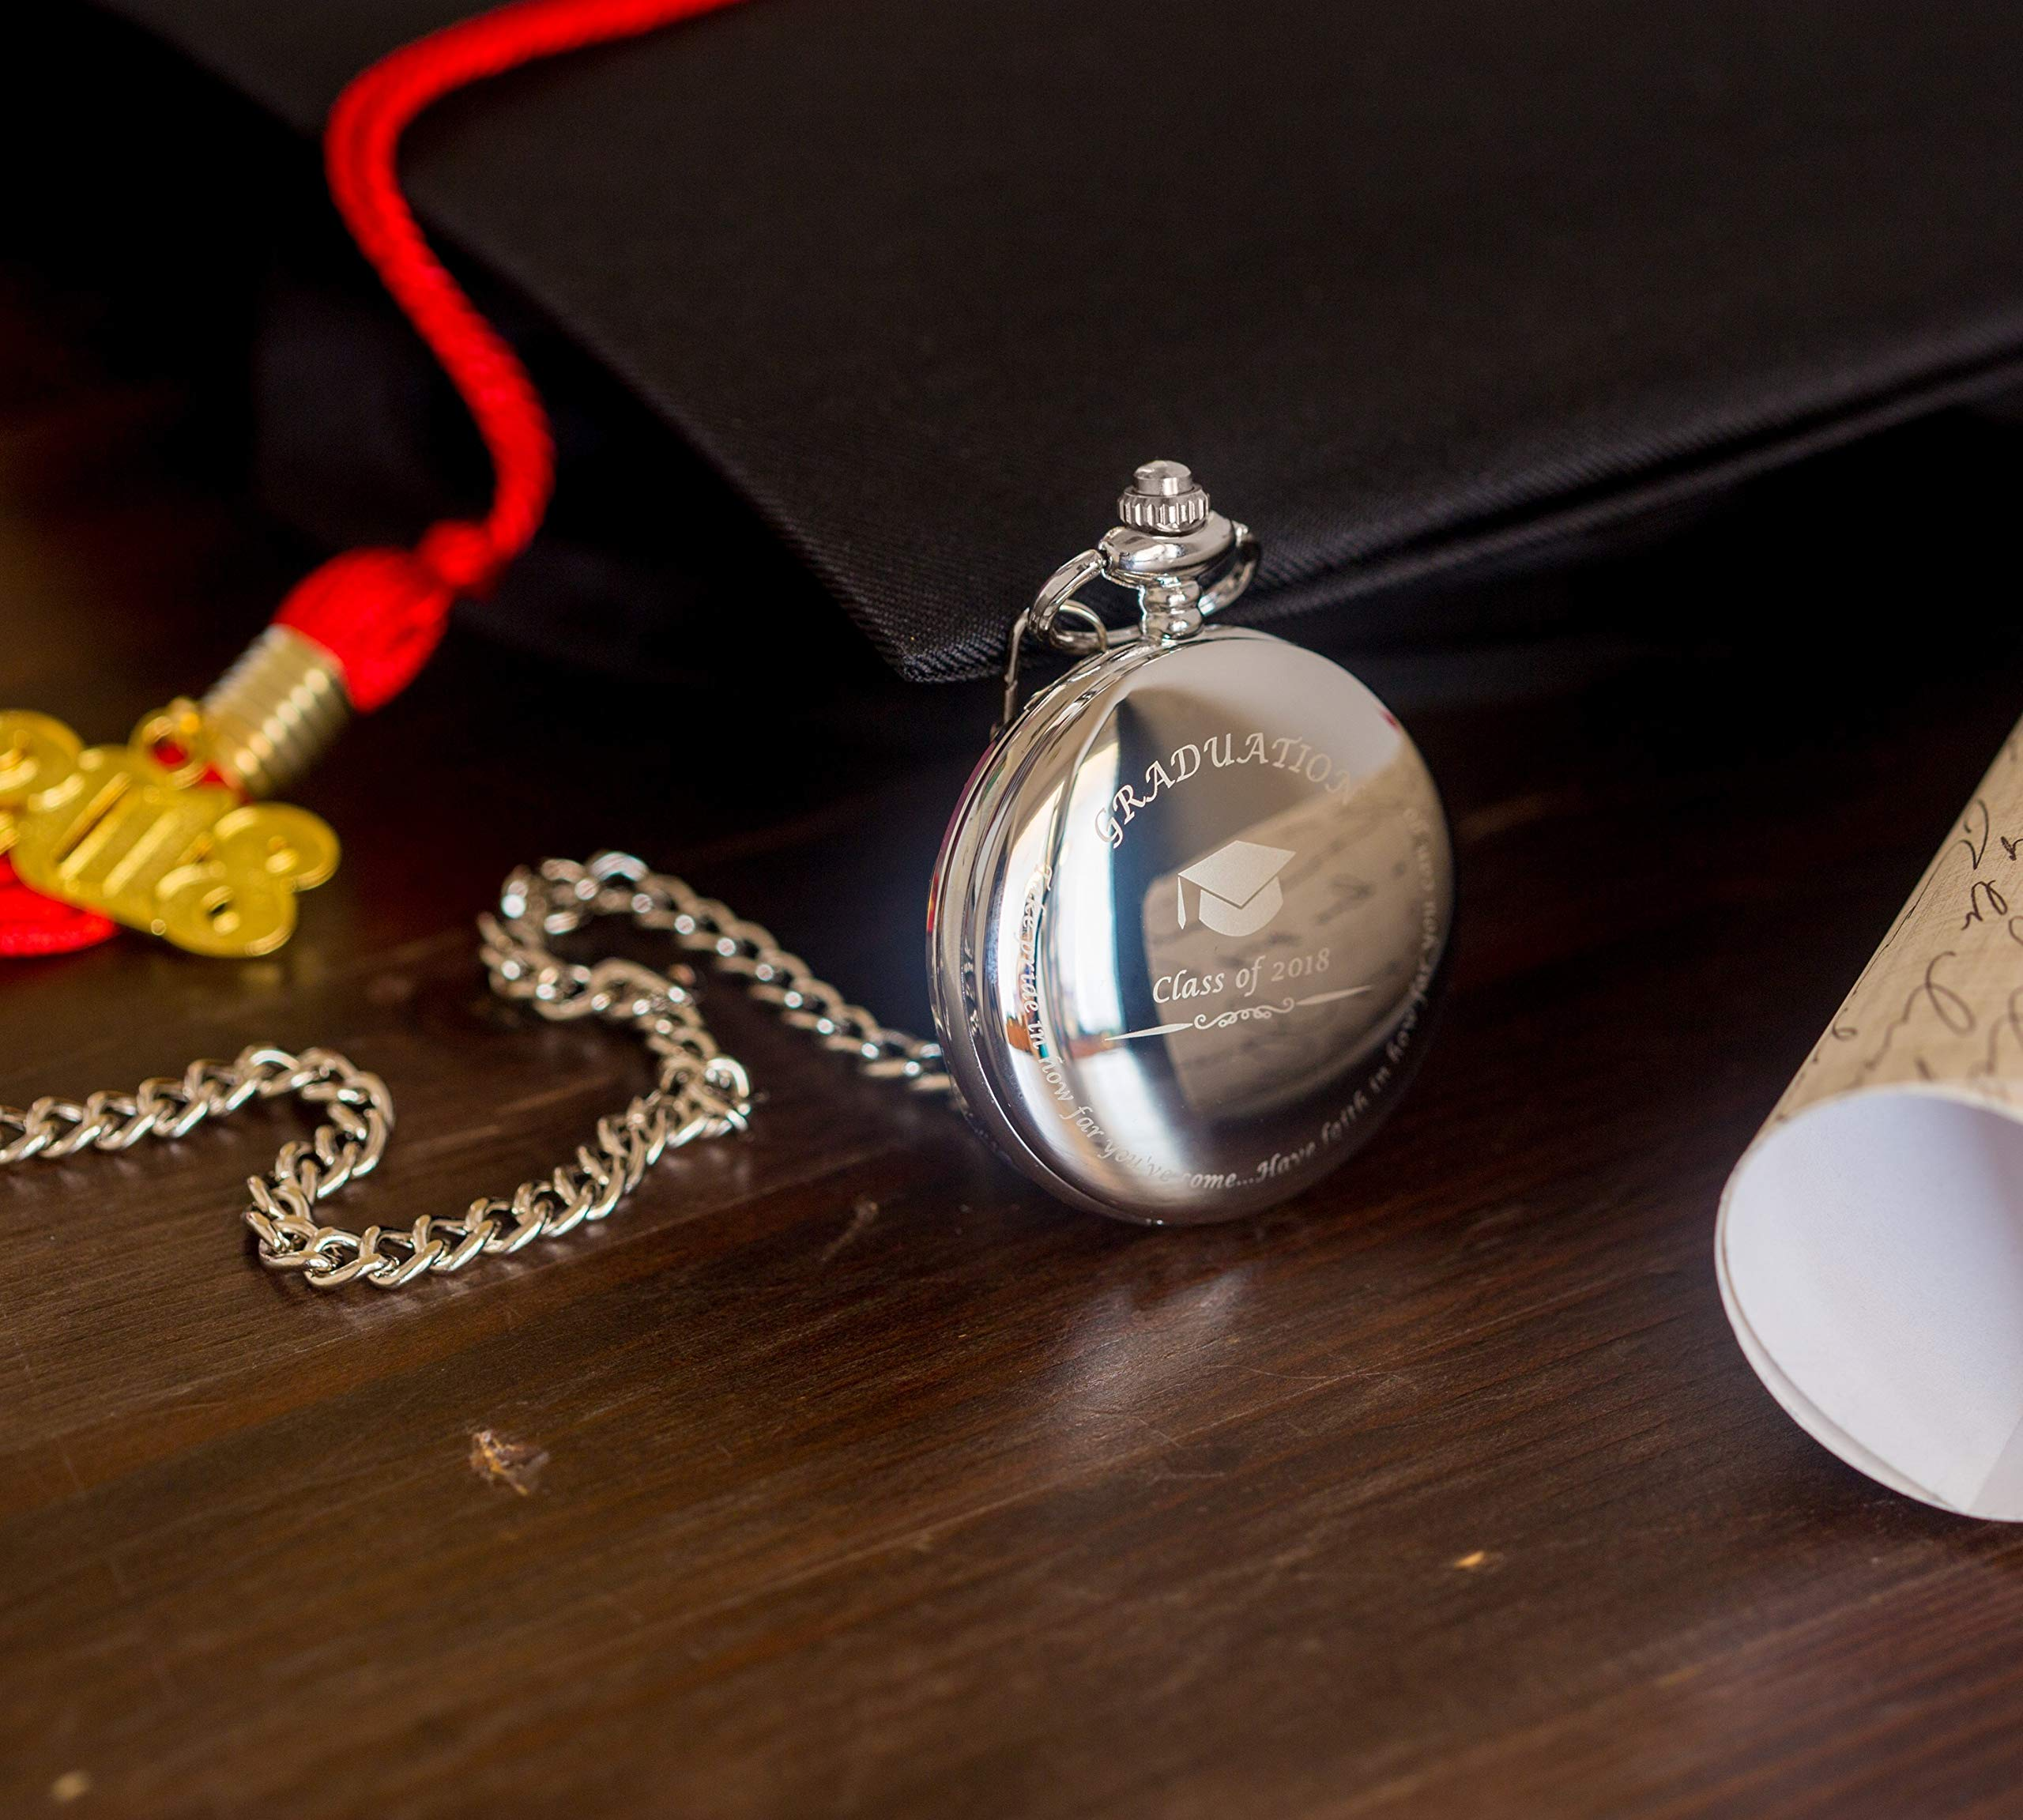 Graduation Gifts for Him - Pocket Watch - Engraved 'Class of 2019' - Perfect College / High School Graduation Gift or Present for Son | Him in 2019 by FREDERICK JAMES (Image #4)